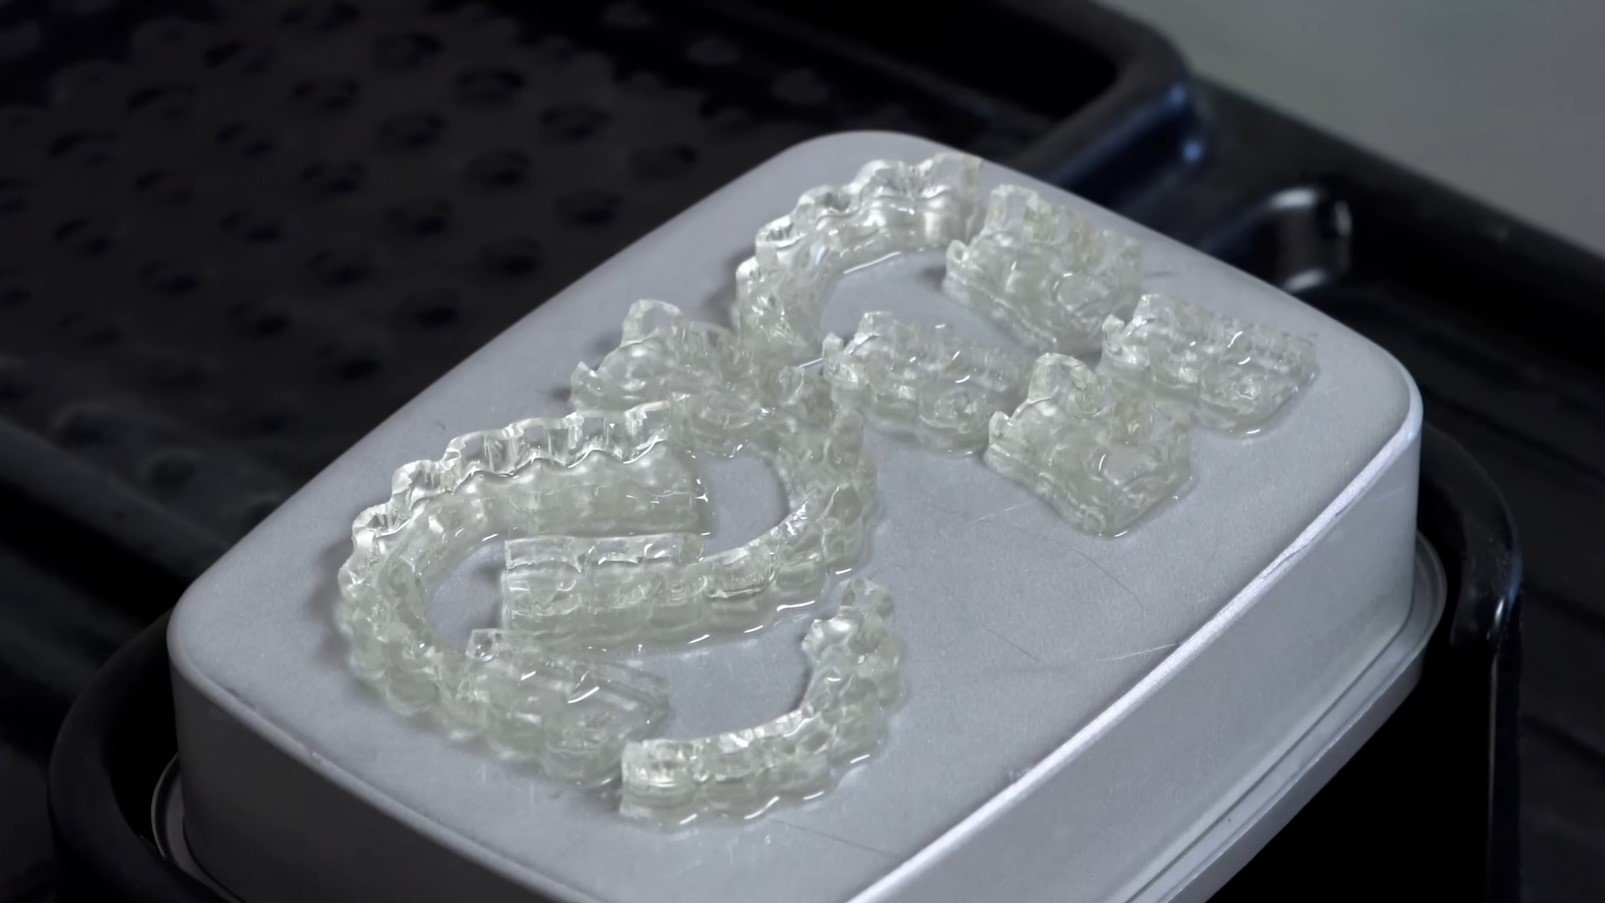 3D Printed Braces: Can You Print Your Own Braces? | All3DP